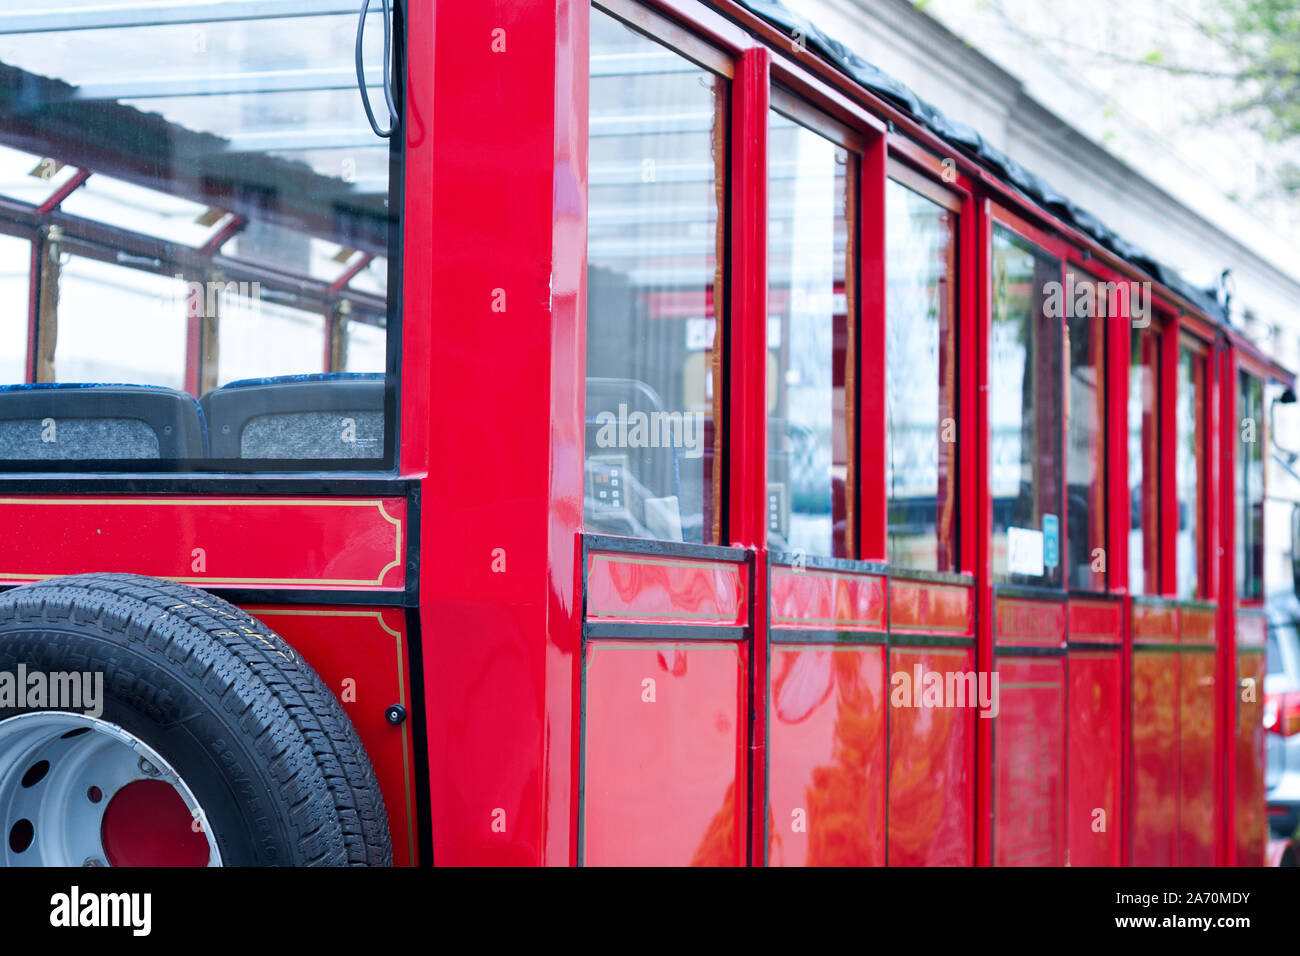 detail of a vintage empty  red tram. old style transport. turistic bus Stock Photo